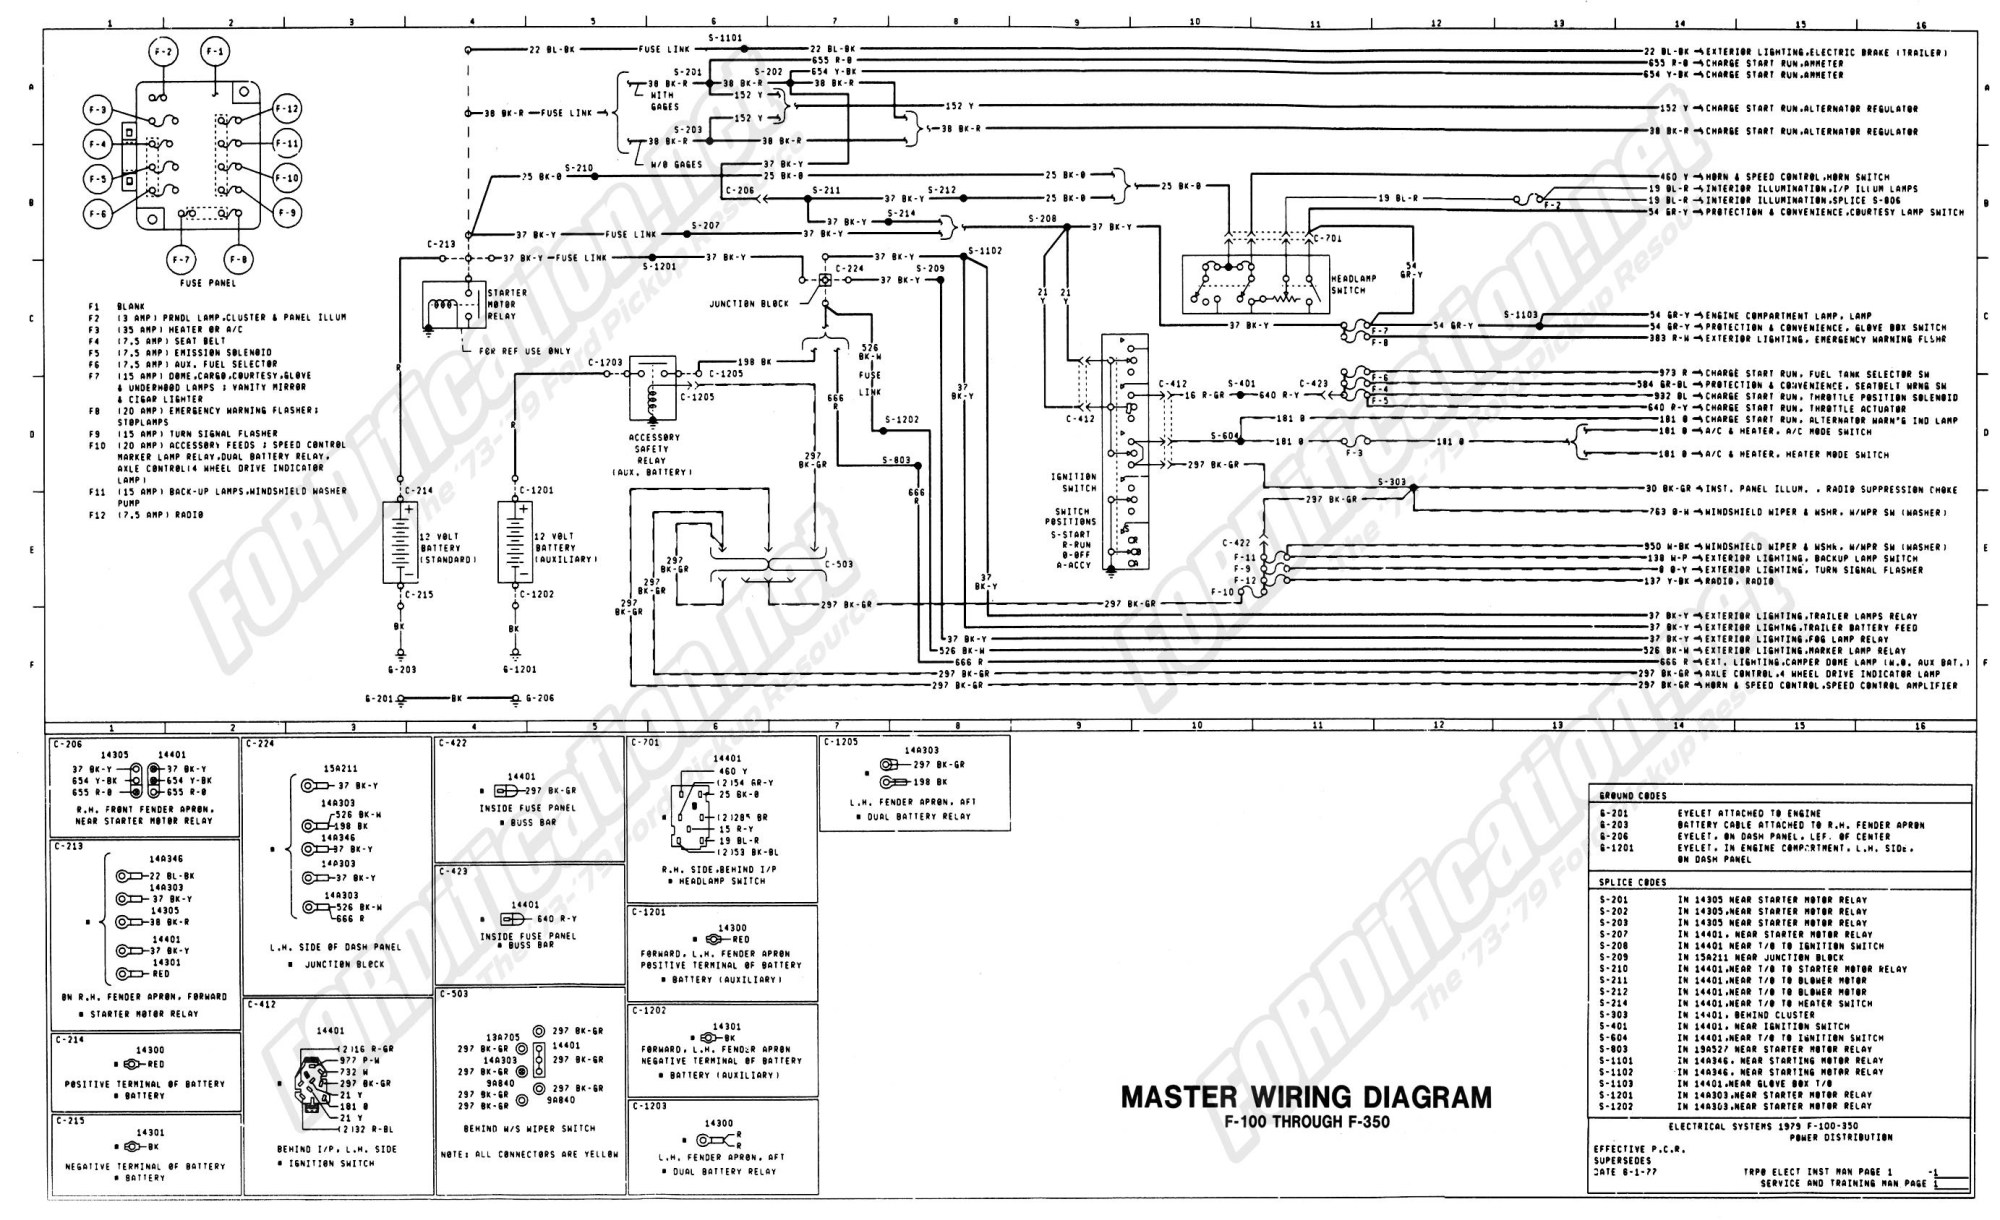 hight resolution of 2001 ford 5 4 engine diagram wiring diagram 1979 ford f150 ignition switch and ford ignition